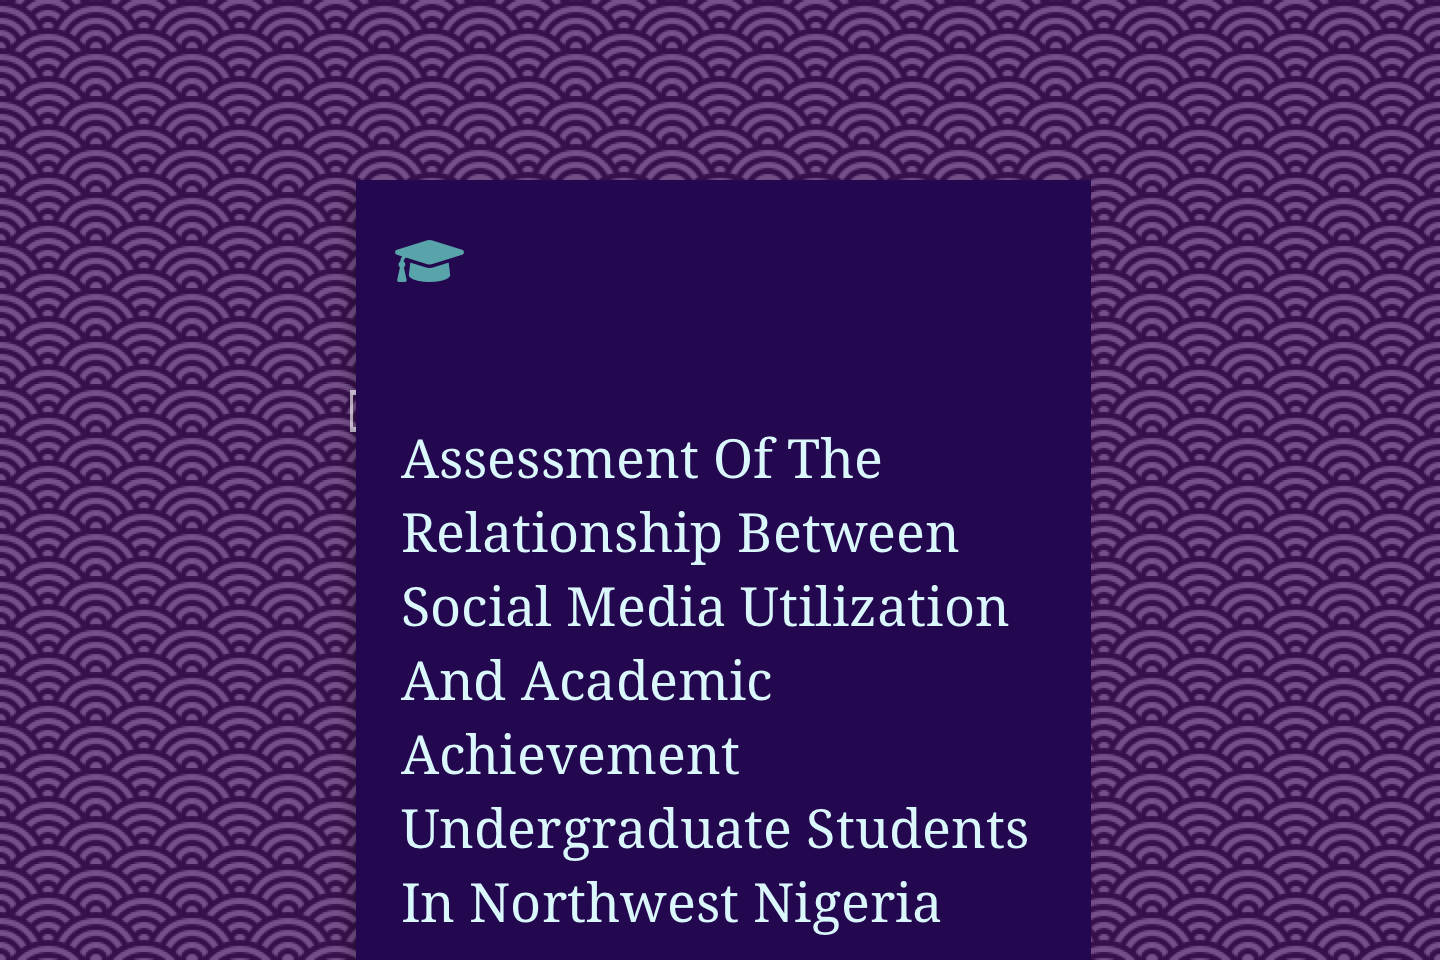 Assessment Of The Relationship Between Social Media Utilization And Academic Achievement Undergraduate Students In Northwest Nigeria